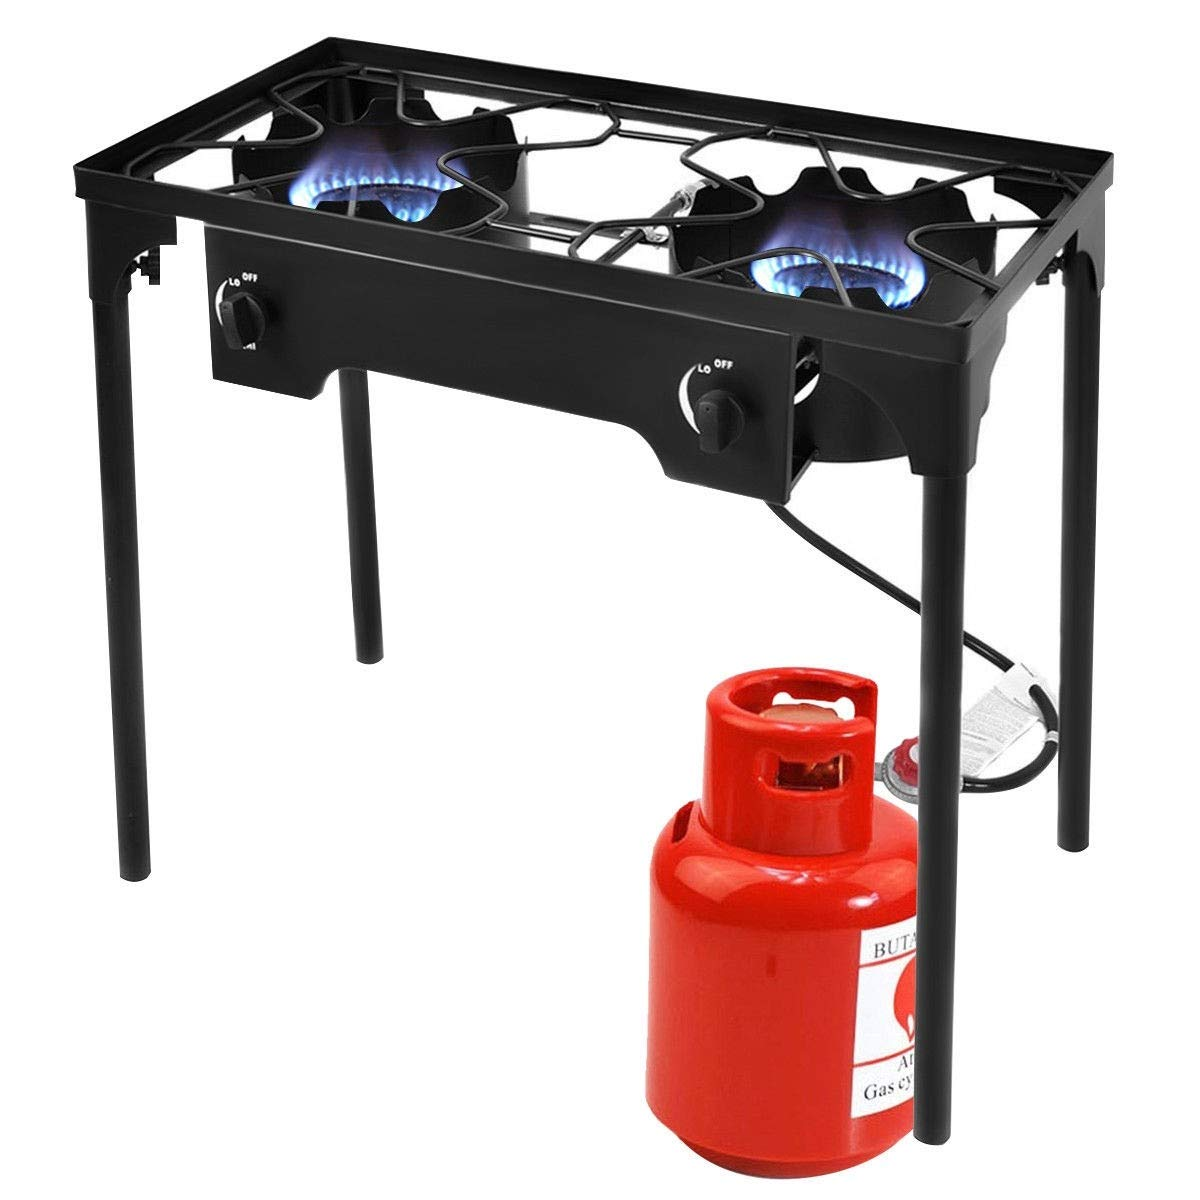 Black Double Burner Outdoor Stove BBQ Grill with This Portable Double Burner BBQ Stove, You can go Camping with Your Friend's Hand in Hand with Great Food; 150000, BTU by GraceShop